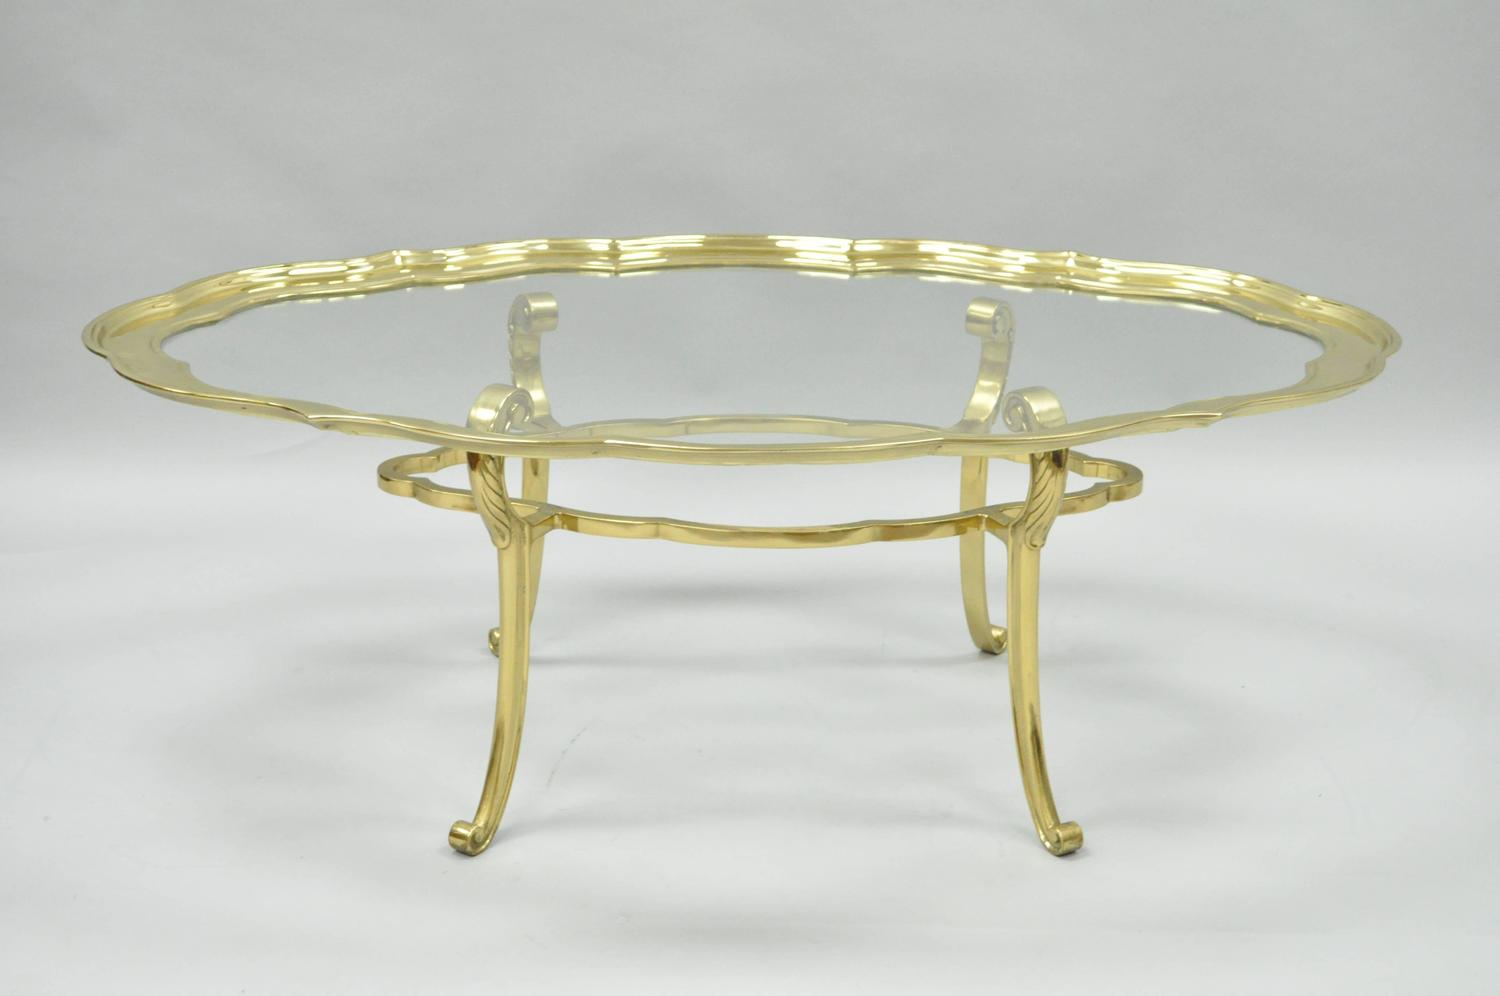 Regency Style Brass Glass Serving Tray Turtle Top Coffee Table Baker Attributed For Sale At 1stdibs